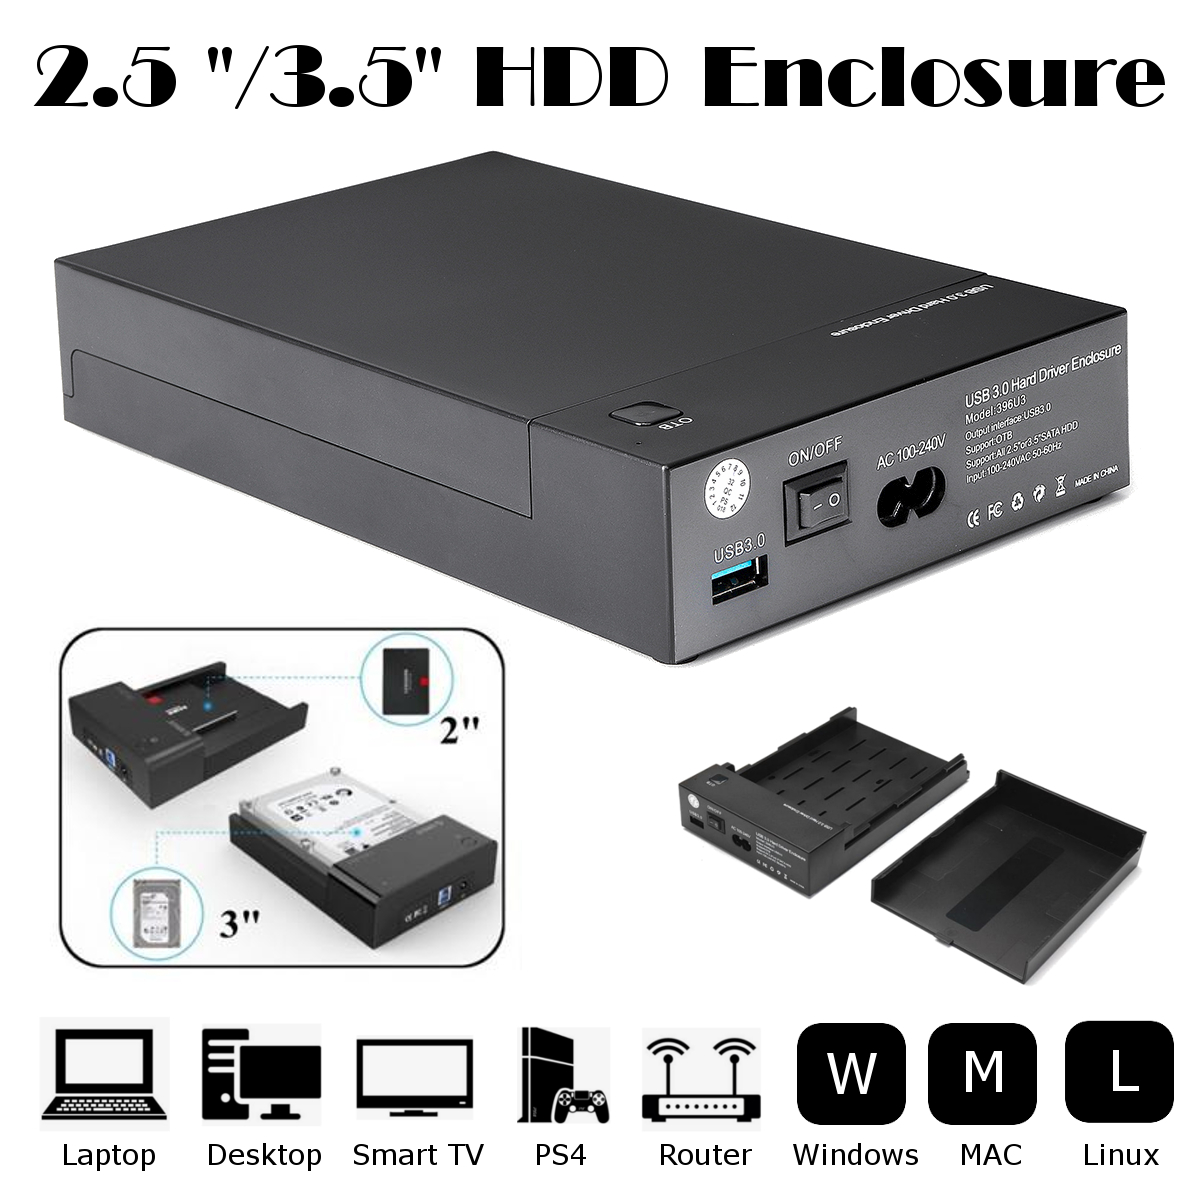 External Hard Disk Drive Enclosure Case 2.5/3.5 inch HDD Case USB 3.0 to SATA HDD Hard Disk Drive Enclosure External Box Case blueendless tool free hdd box 2 5 sata hdd externo external hard drive case 2 5 hard disk case plastic hdd case 2 5 usb 3 0